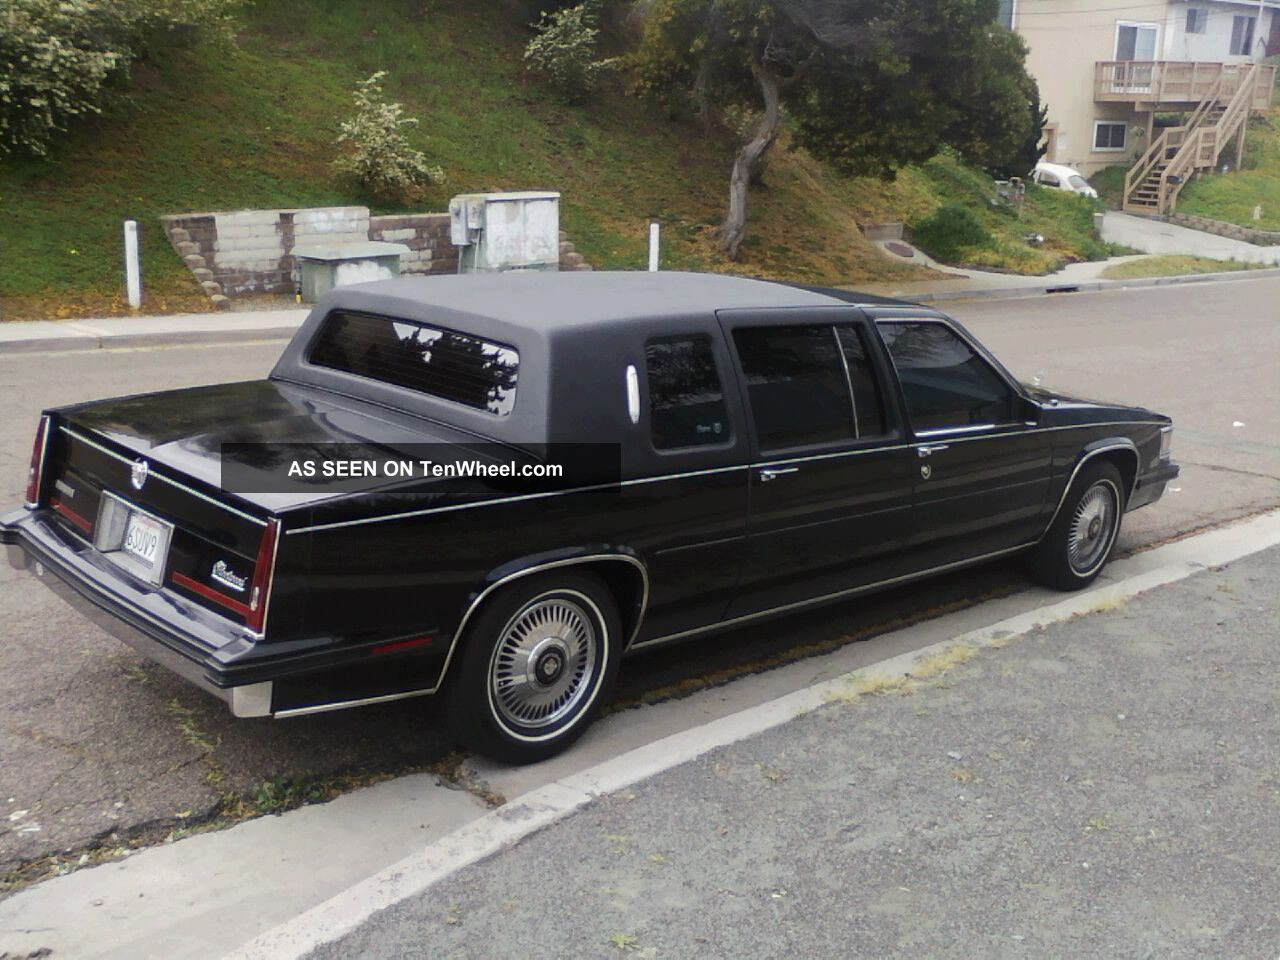 1985 Cadillac Fleetwood Series 75 Limousine